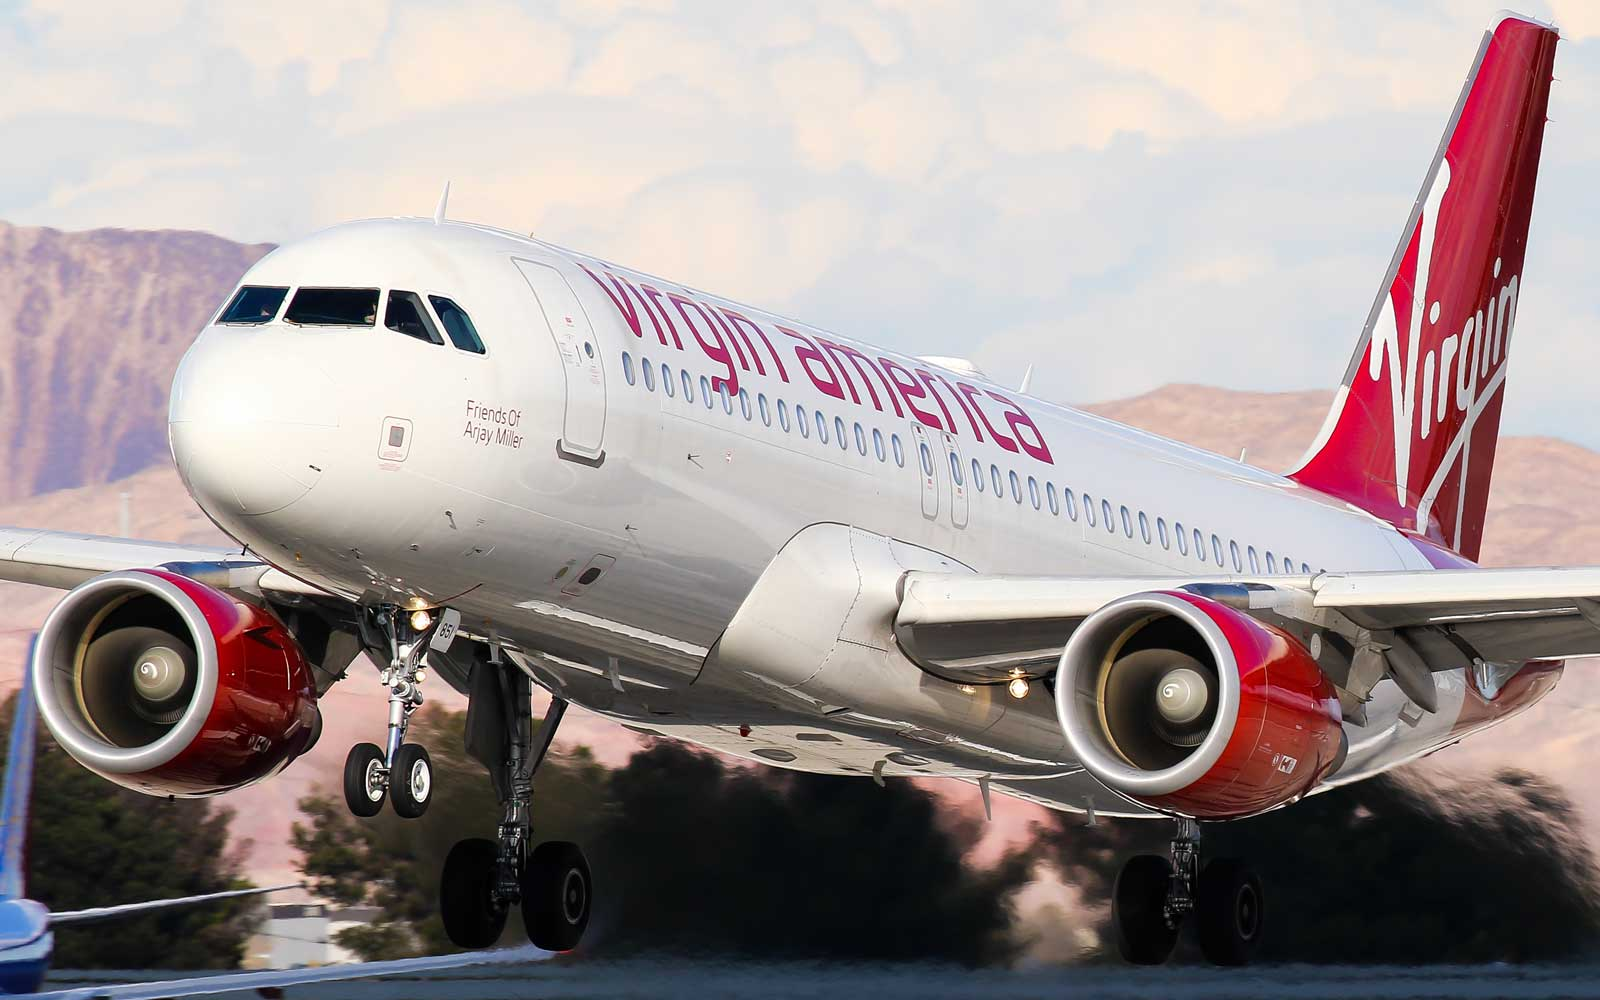 Virgin America Airplane taking off